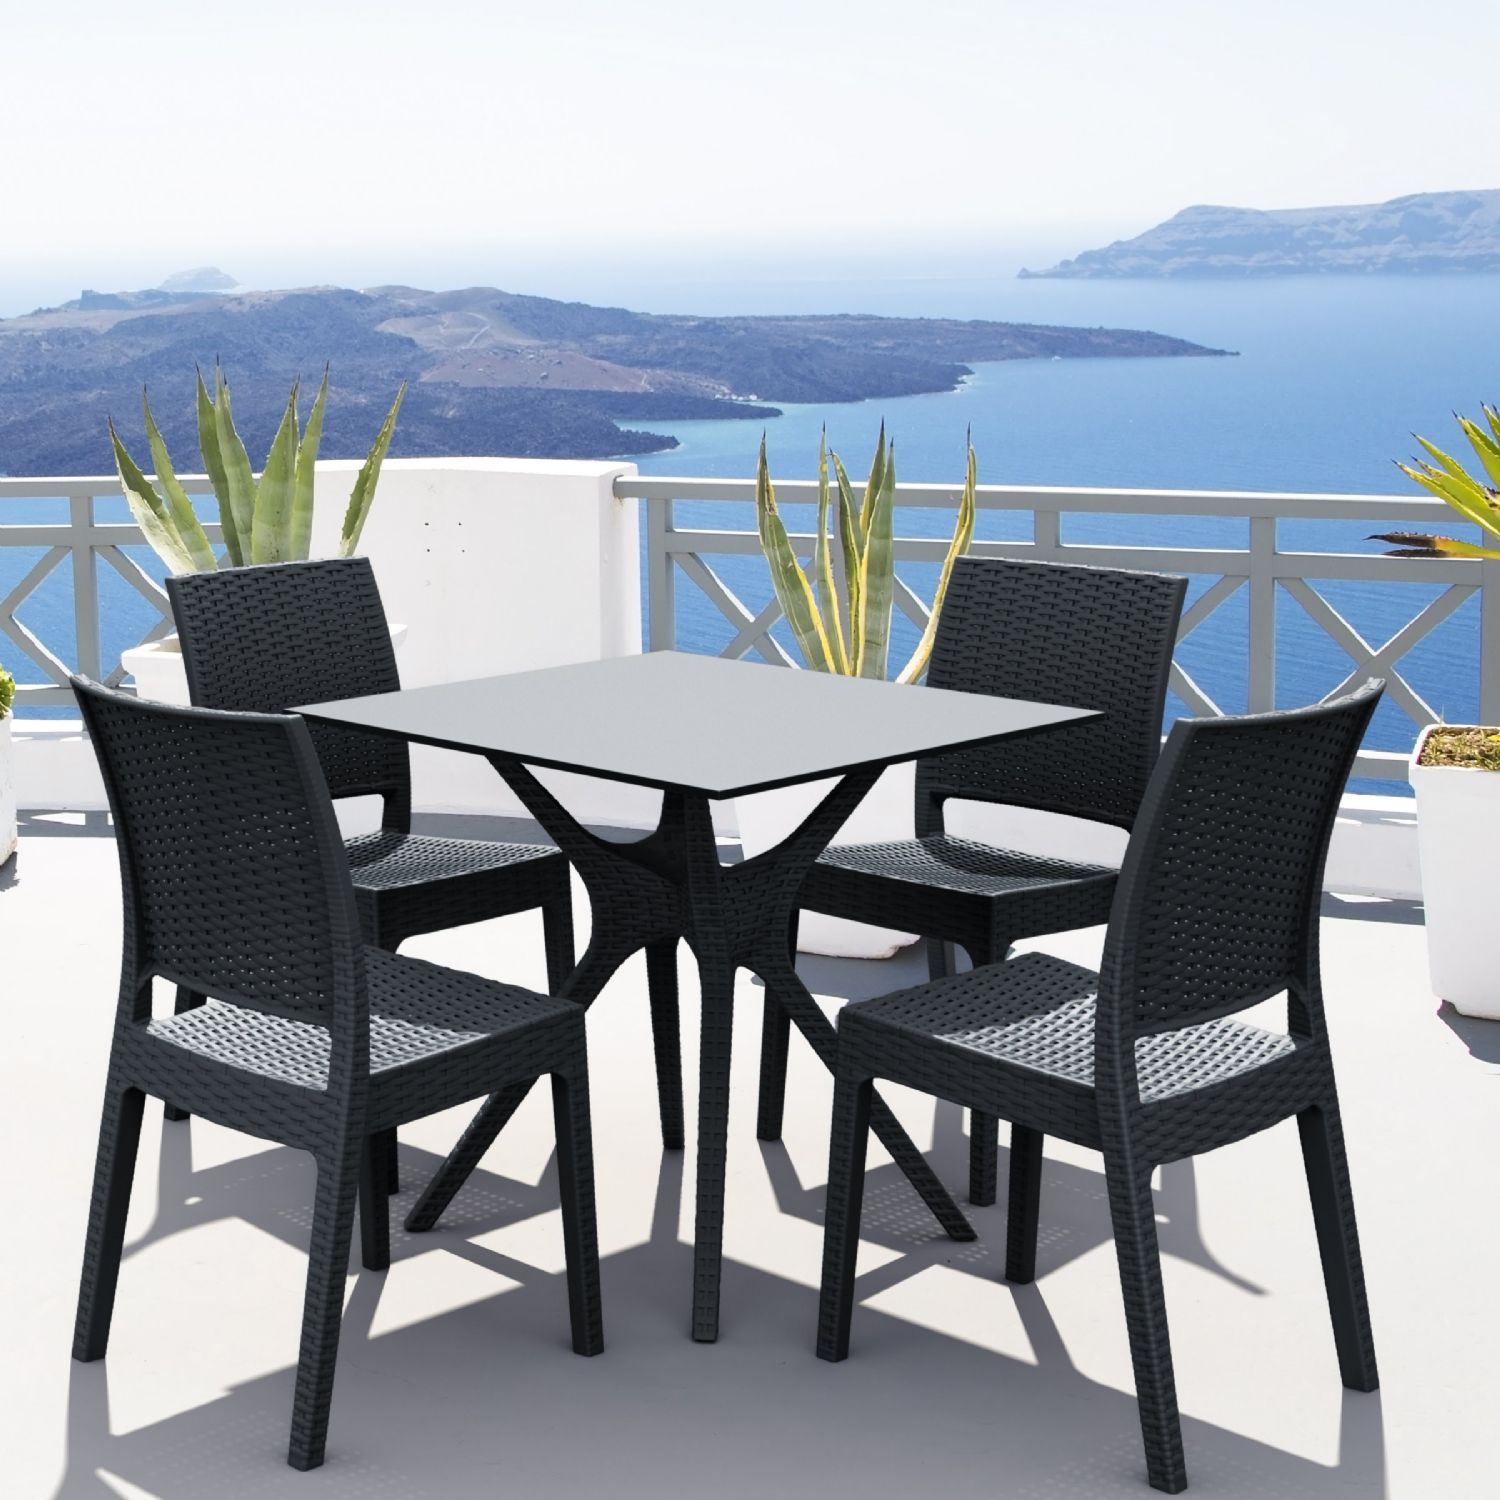 Ibiza Florida Square Patio Dining Set 5 Piece White ISP8631S-WH - 3